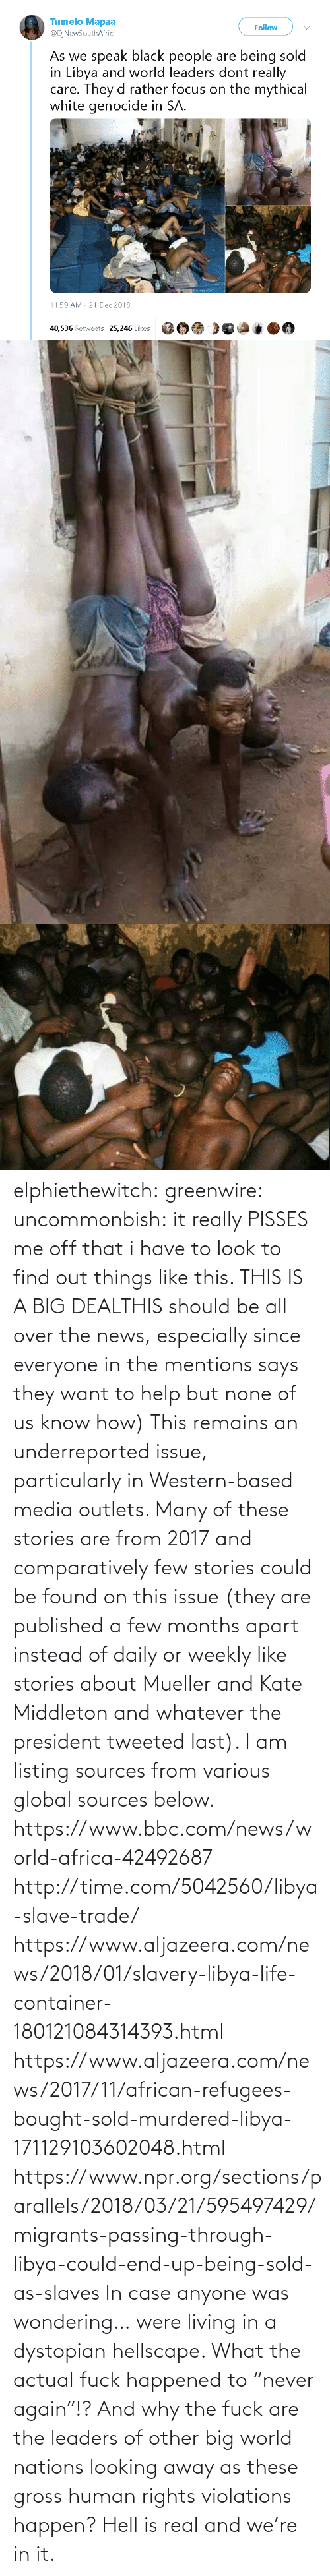 "Help: elphiethewitch: greenwire:  uncommonbish:  it really PISSES me off that i have to look to find out things like this. THIS IS A BIG DEALTHIS should be all over the news, especially since everyone in the mentions says they want to help but none of us know how)  This remains an underreported issue, particularly in Western-based media outlets. Many of these stories are from 2017 and comparatively few stories could be found on this issue (they are published a few months apart instead of daily or weekly like stories about Mueller and Kate Middleton and whatever the president tweeted last). I am listing sources from various global sources below.  https://www.bbc.com/news/world-africa-42492687 http://time.com/5042560/libya-slave-trade/ https://www.aljazeera.com/news/2018/01/slavery-libya-life-container-180121084314393.html https://www.aljazeera.com/news/2017/11/african-refugees-bought-sold-murdered-libya-171129103602048.html https://www.npr.org/sections/parallels/2018/03/21/595497429/migrants-passing-through-libya-could-end-up-being-sold-as-slaves   In case anyone was wondering… were living in a dystopian hellscape.  What the actual fuck happened to ""never again""!? And why the fuck are the leaders of other big world nations looking away as these gross human rights violations happen?  Hell is real and we're in it."